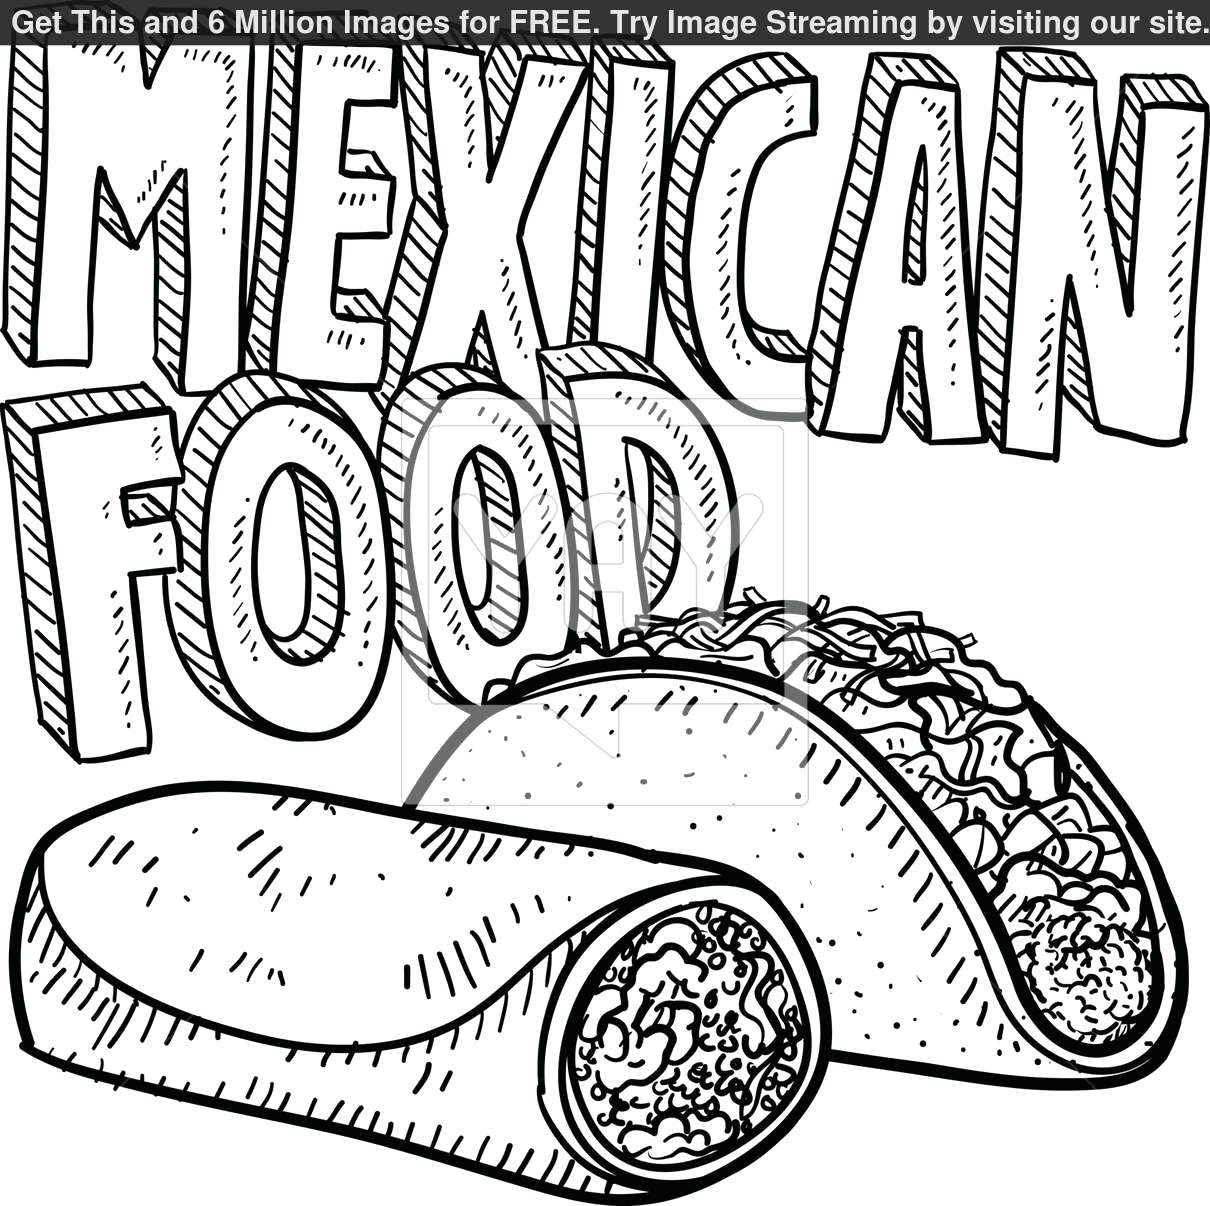 1210x1206 Fresh Coloring Pages In Gallery Ideas With Mexican Flag Emblem